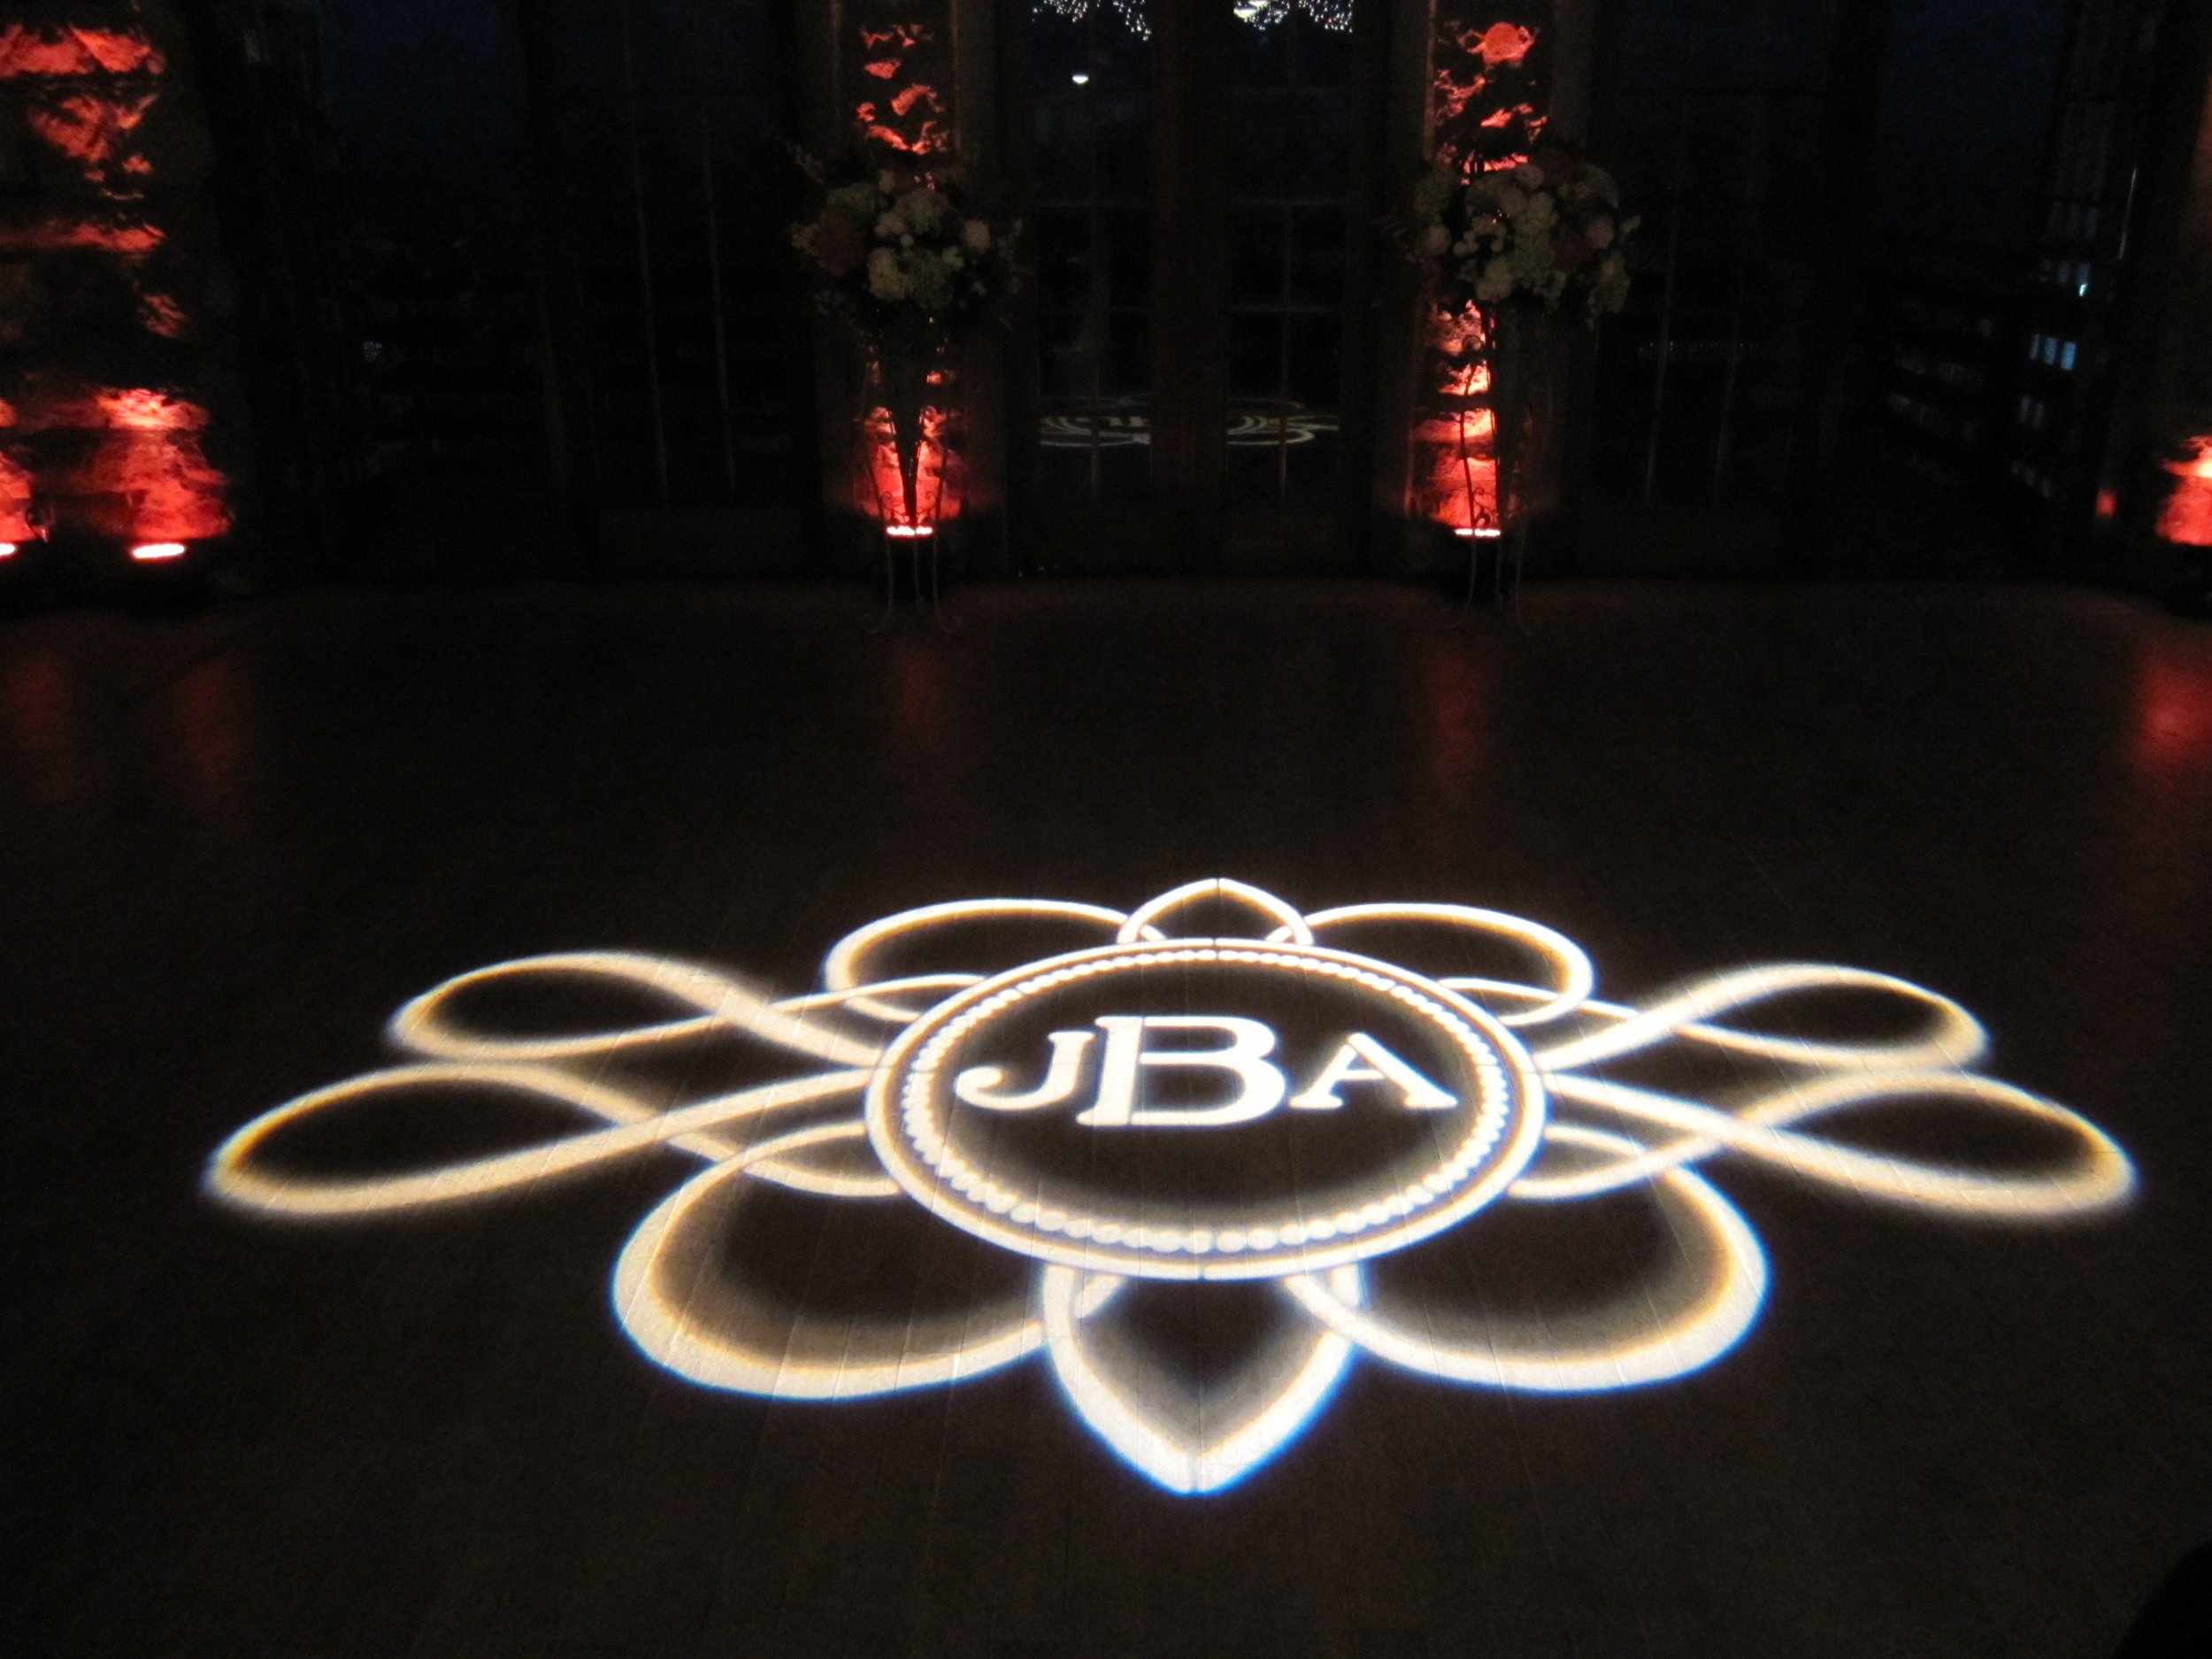 Floor monogram light at The Towers